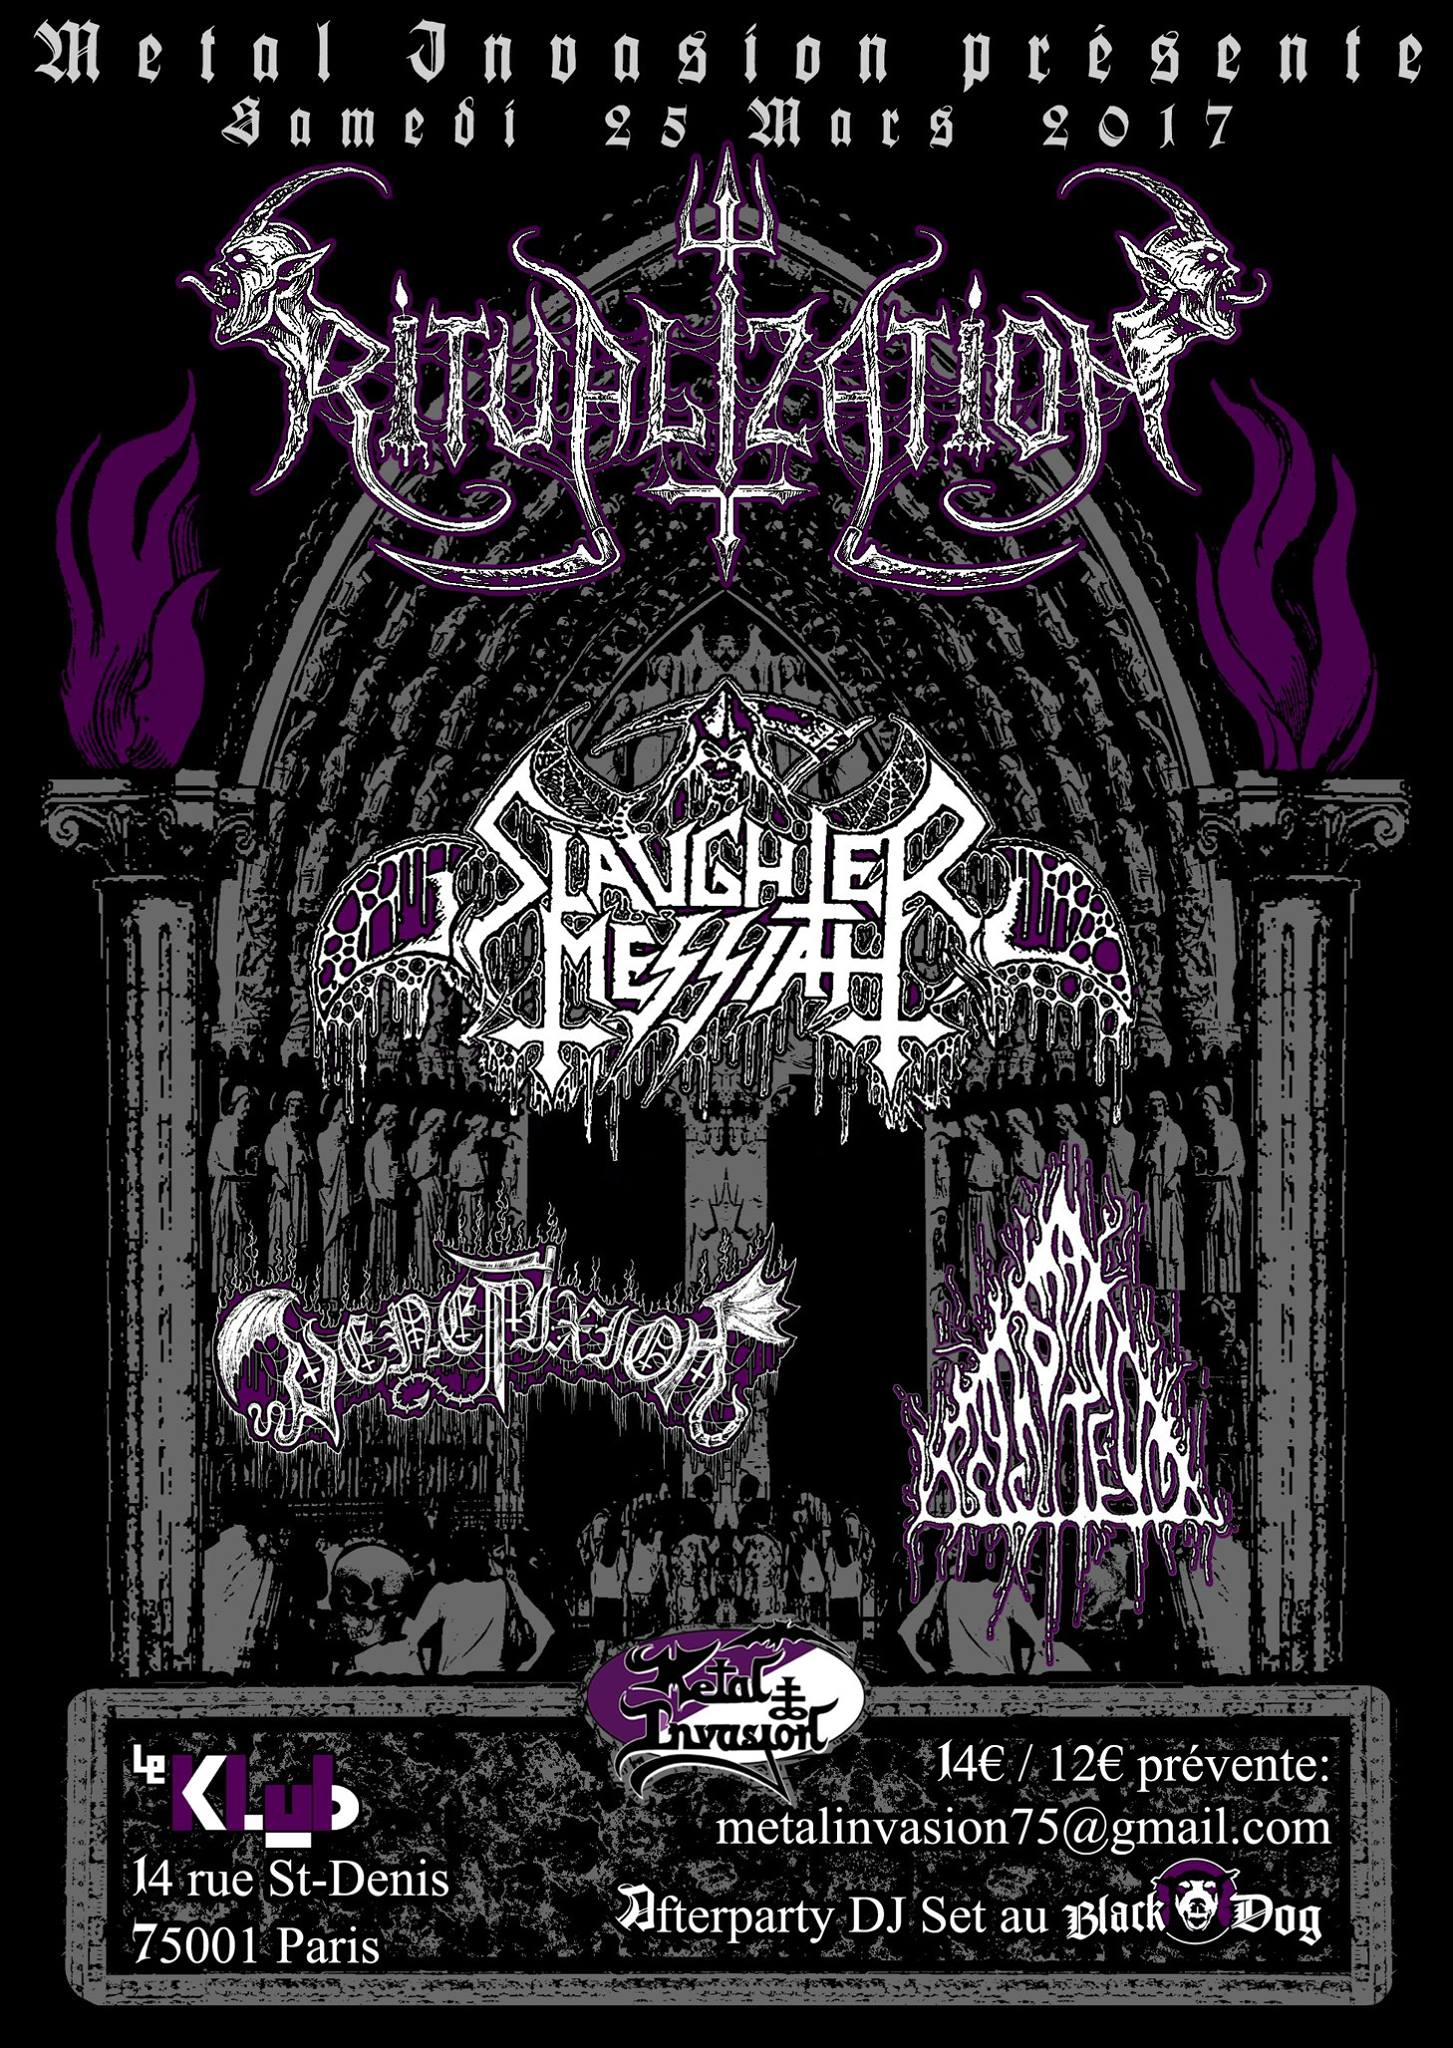 Ritualization ■ Slaughter Messiah ■ Venefixion ■ Psychomanteum ■ 25.03